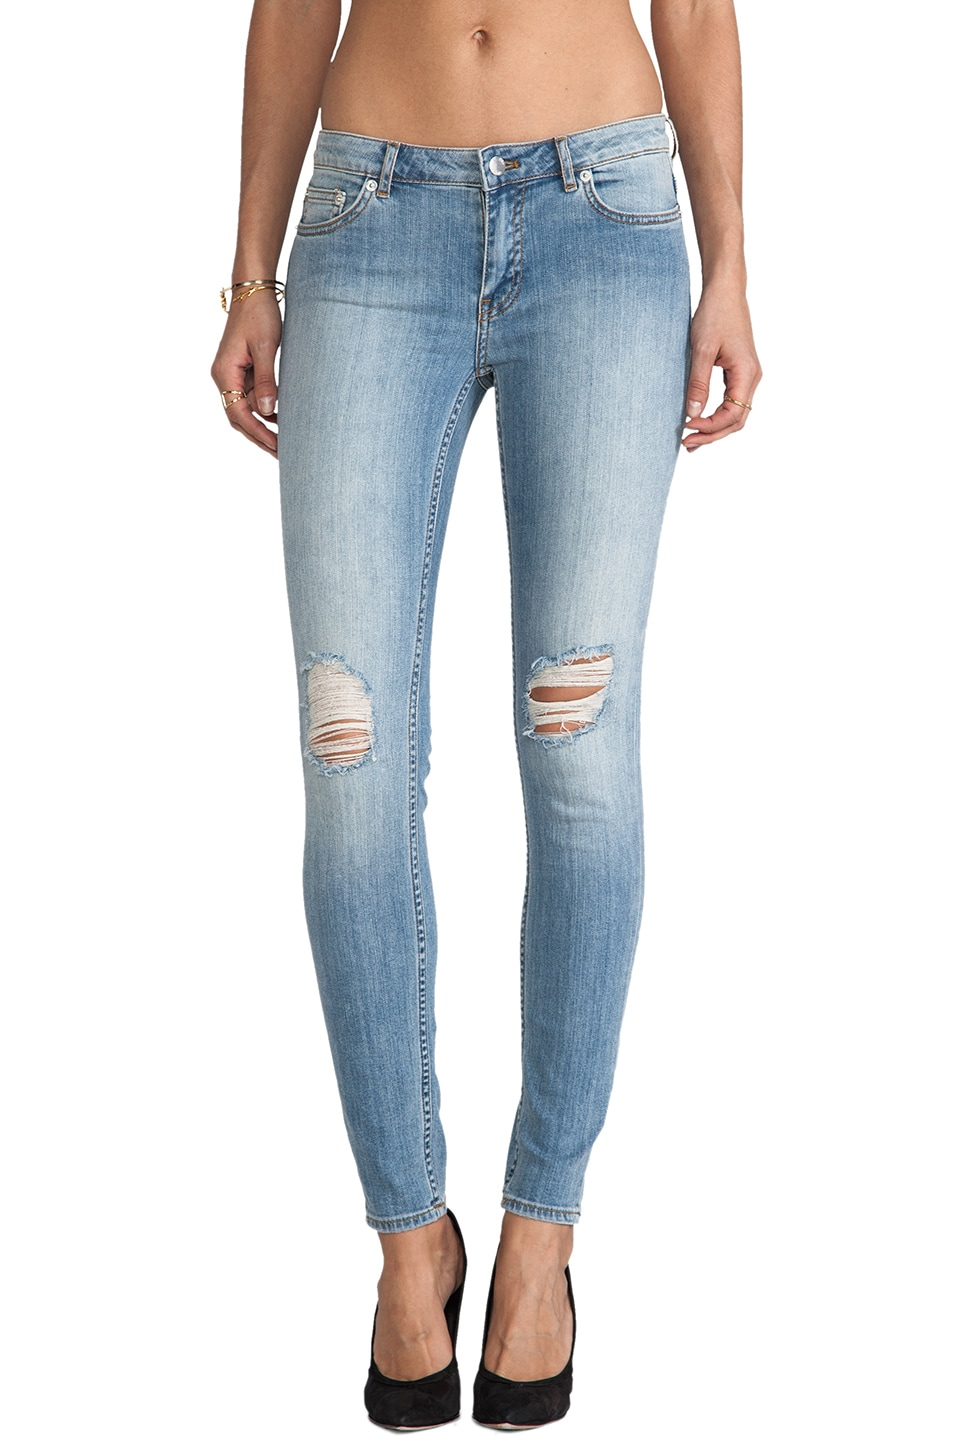 BLK DNM Jeans 26 in Stagg Blue